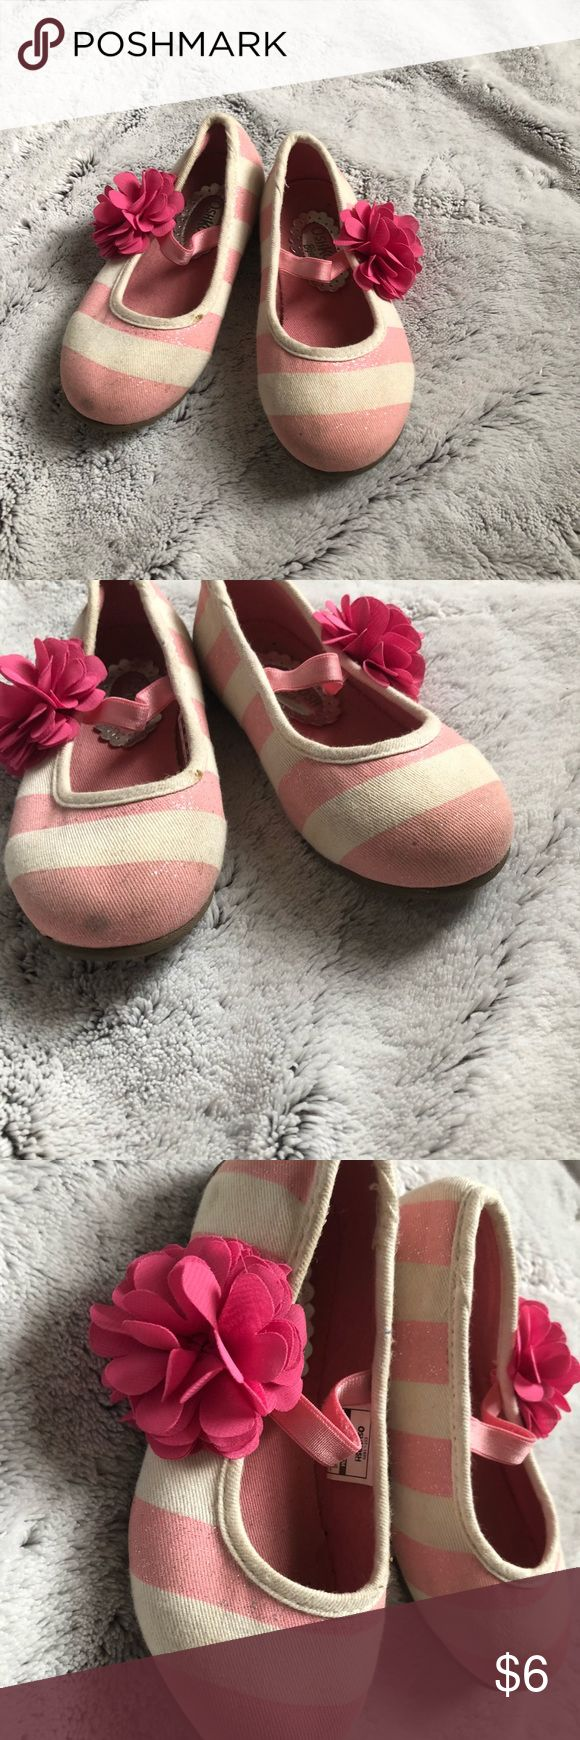 Osh Kosh B'gosh Striped Flower Flats Pink and cream striped ballet flats with elastic top strap and 3D flower detail as seen. Good used condition - wear can be seen in pics. OshKosh B'gosh Shoes